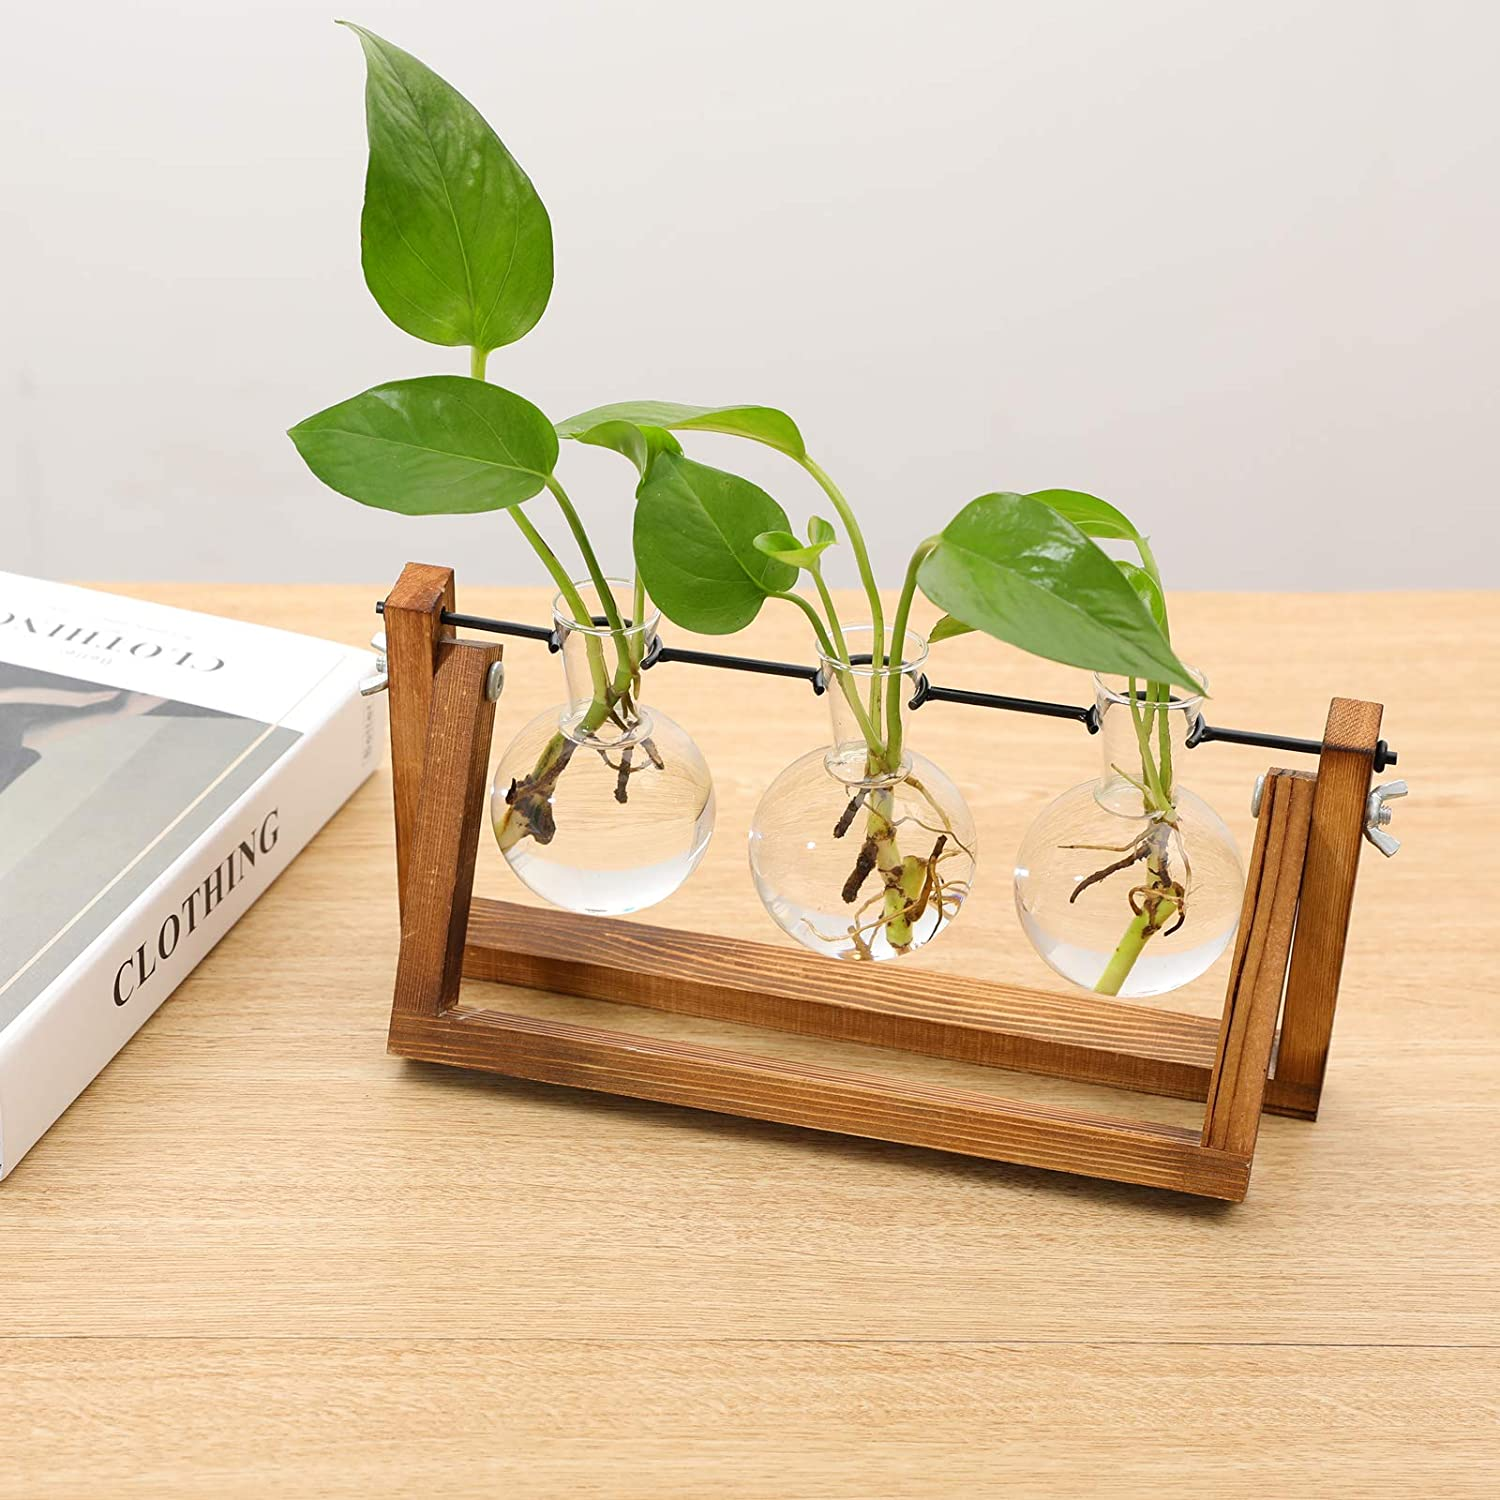 Gifts for Her 1 Bulb Vase Small Plants Terrarium Vintage Home Accessories Desk Plant Glass Bulb Vases with Wooden Stand Propagation Station for Hydroponics